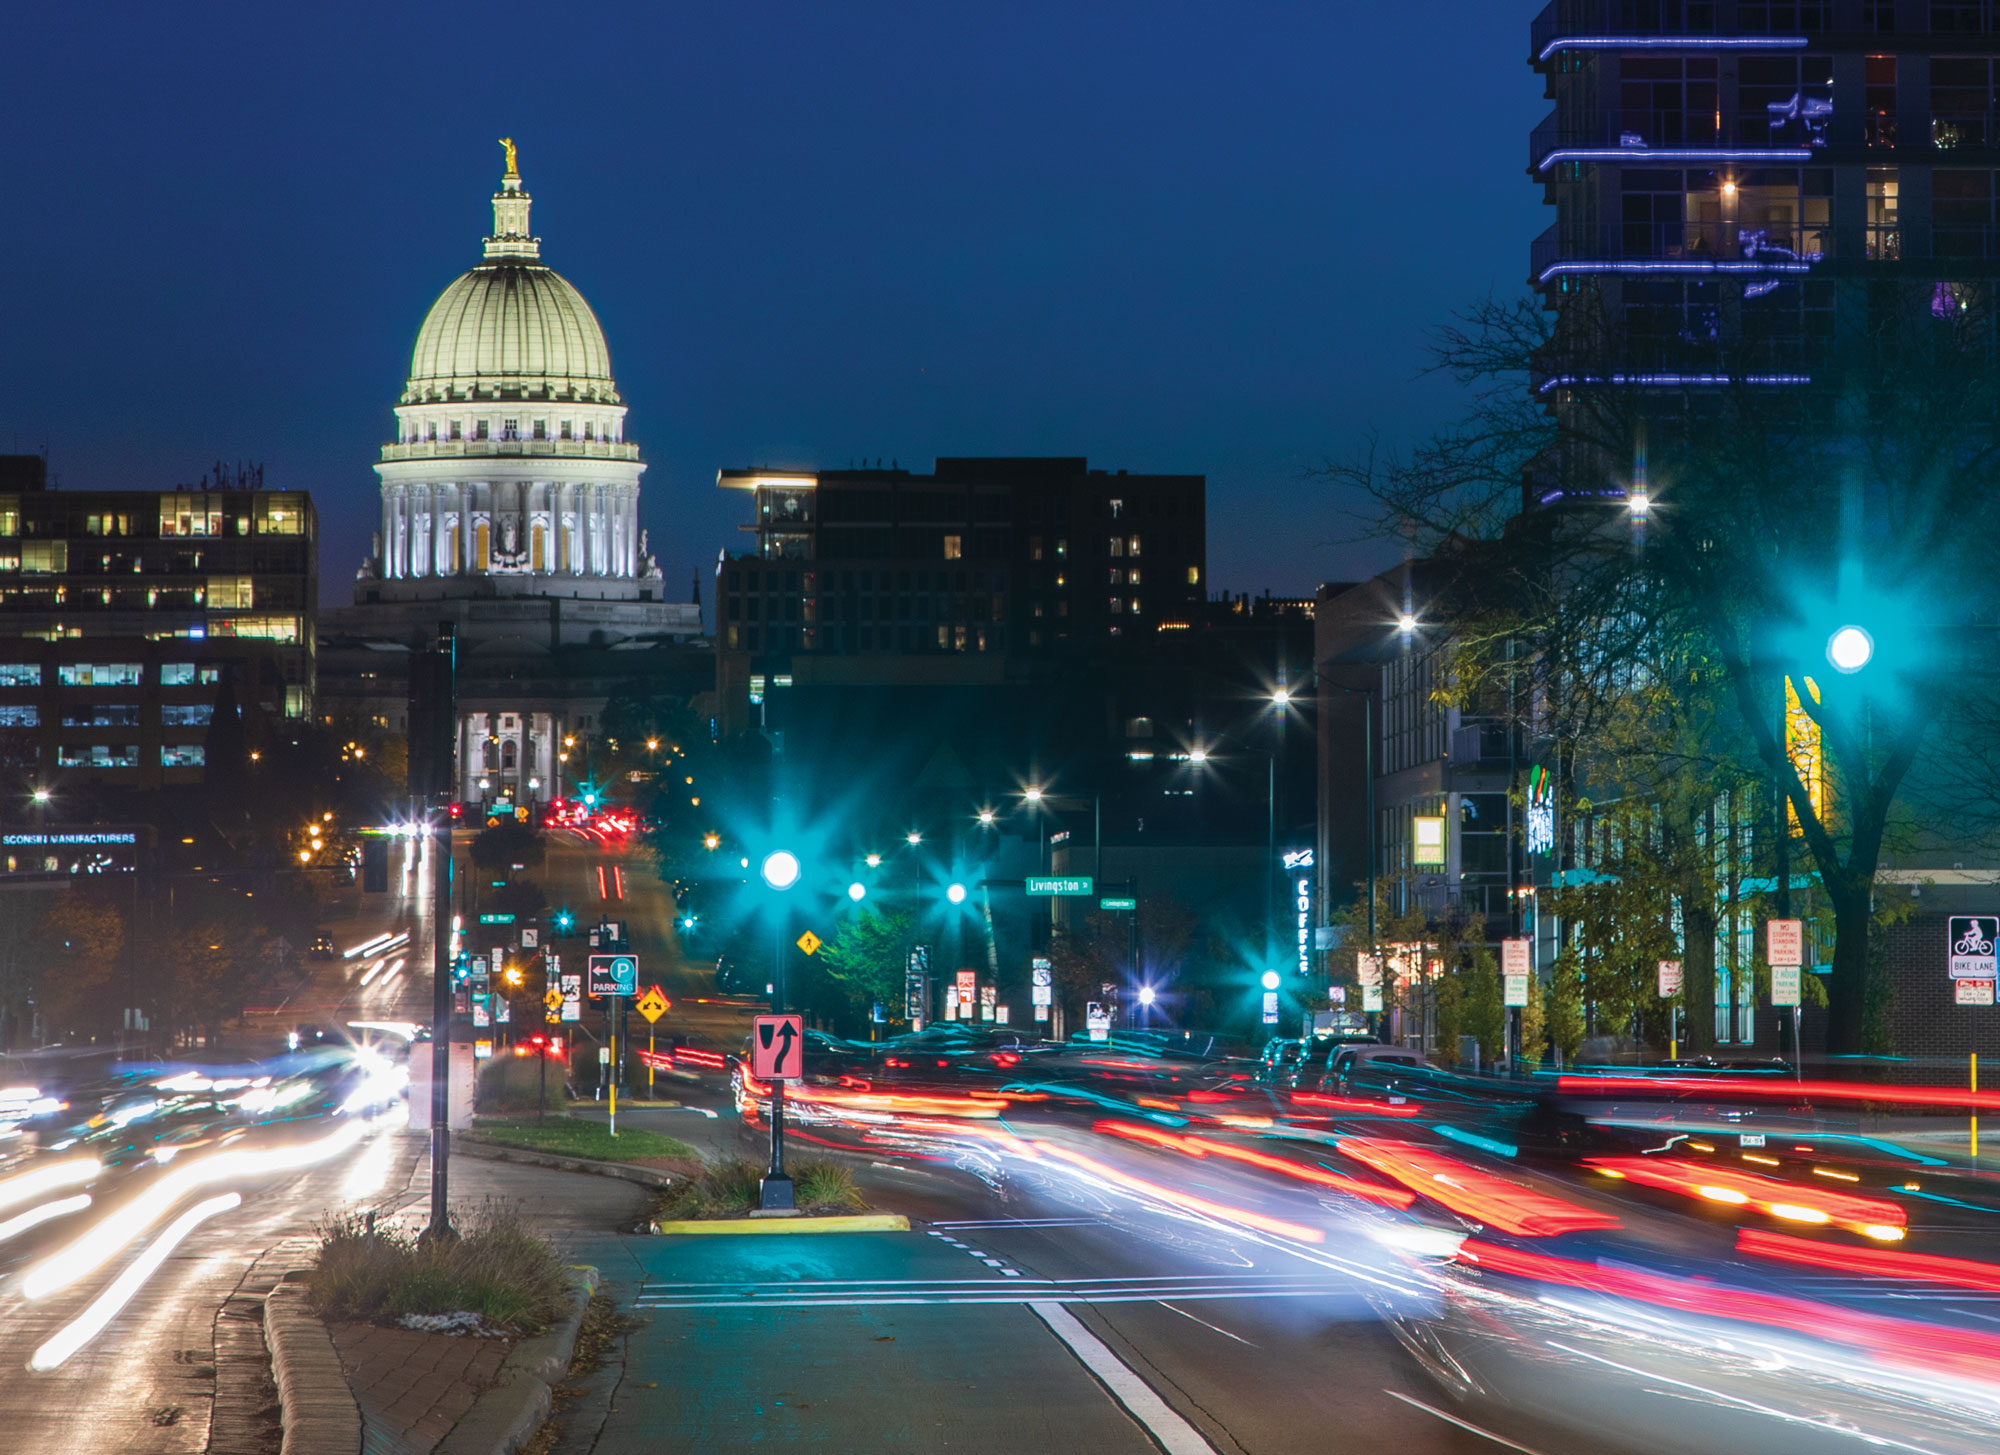 Night scene of downtown Madison